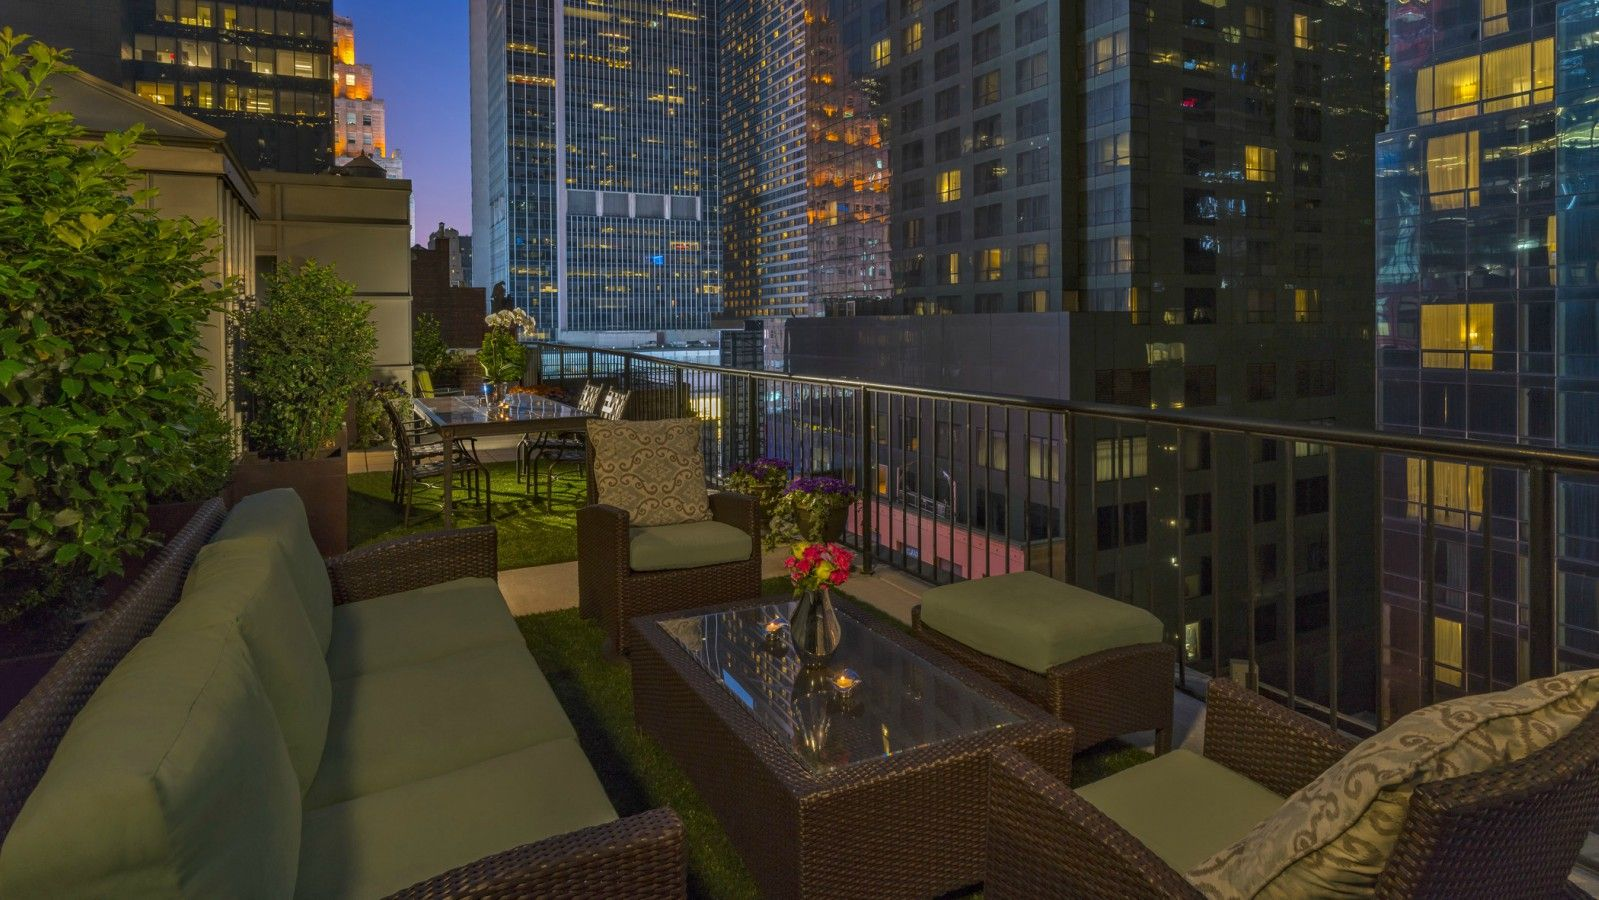 Producer Suite | The Chatwal, a Luxury Collection Hotel, New York City